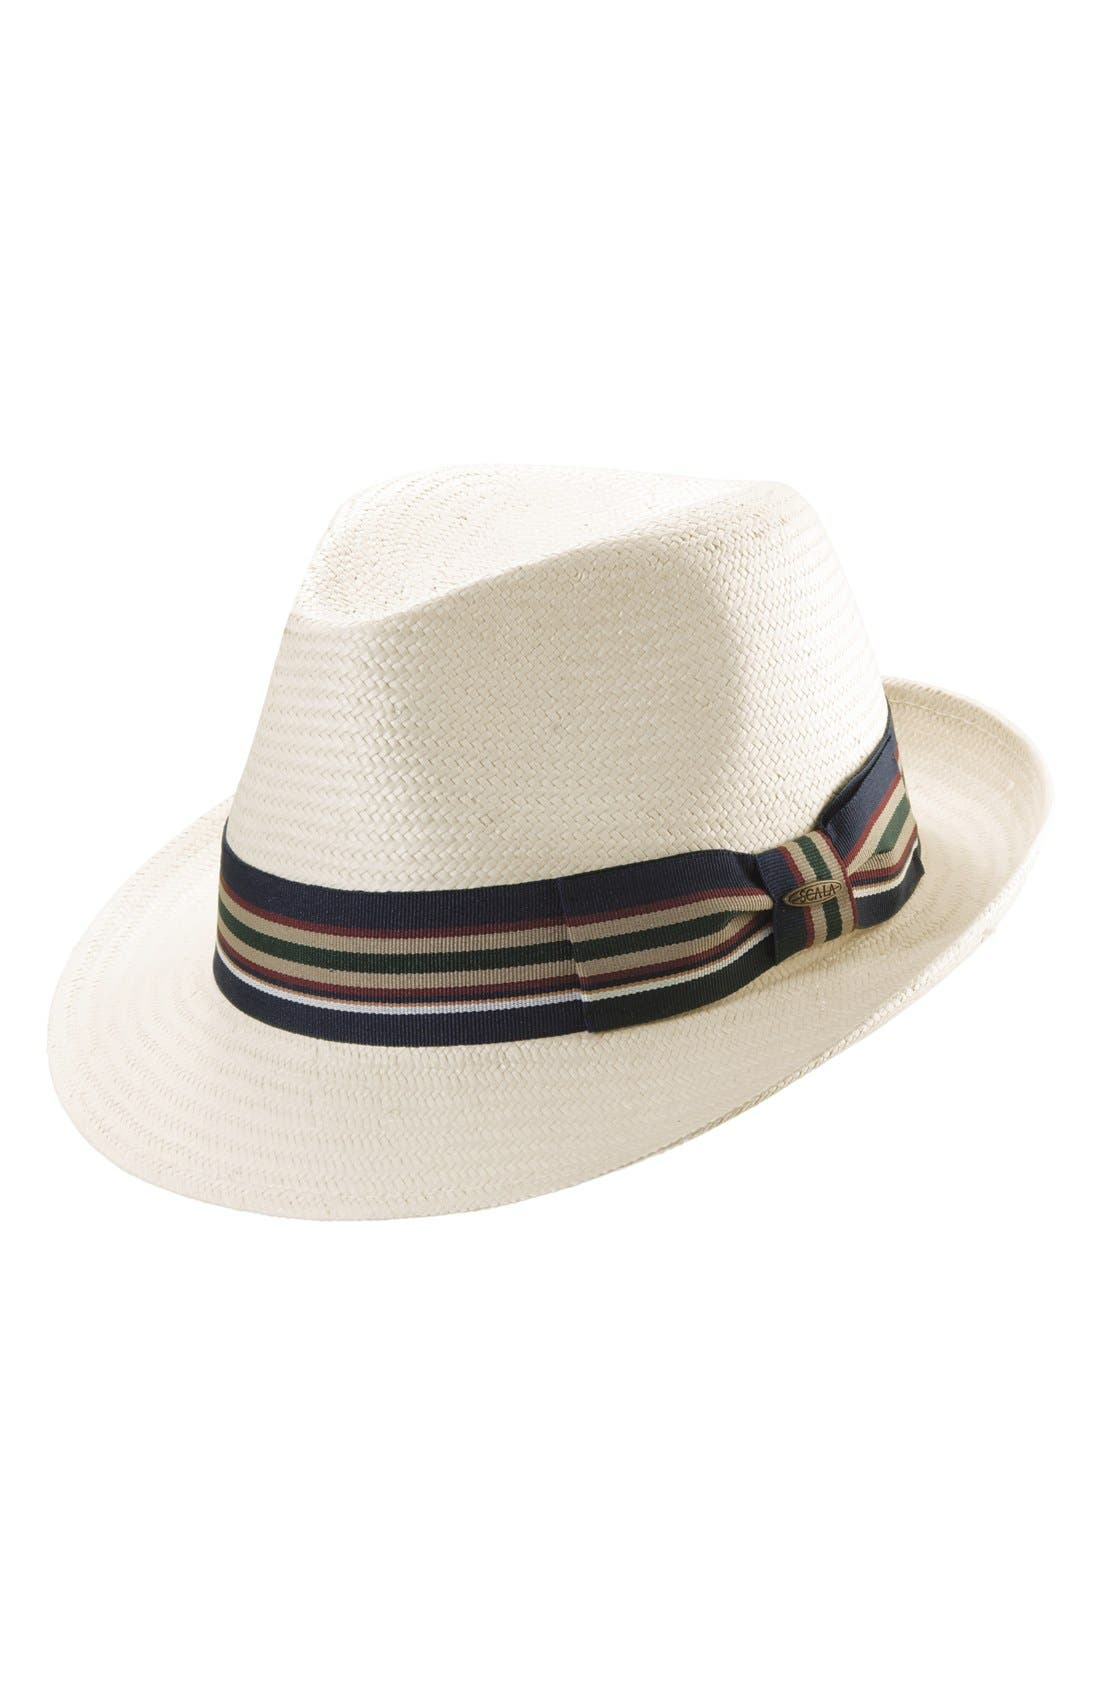 Alternate Image 1 Selected - Scala Straw Trilby